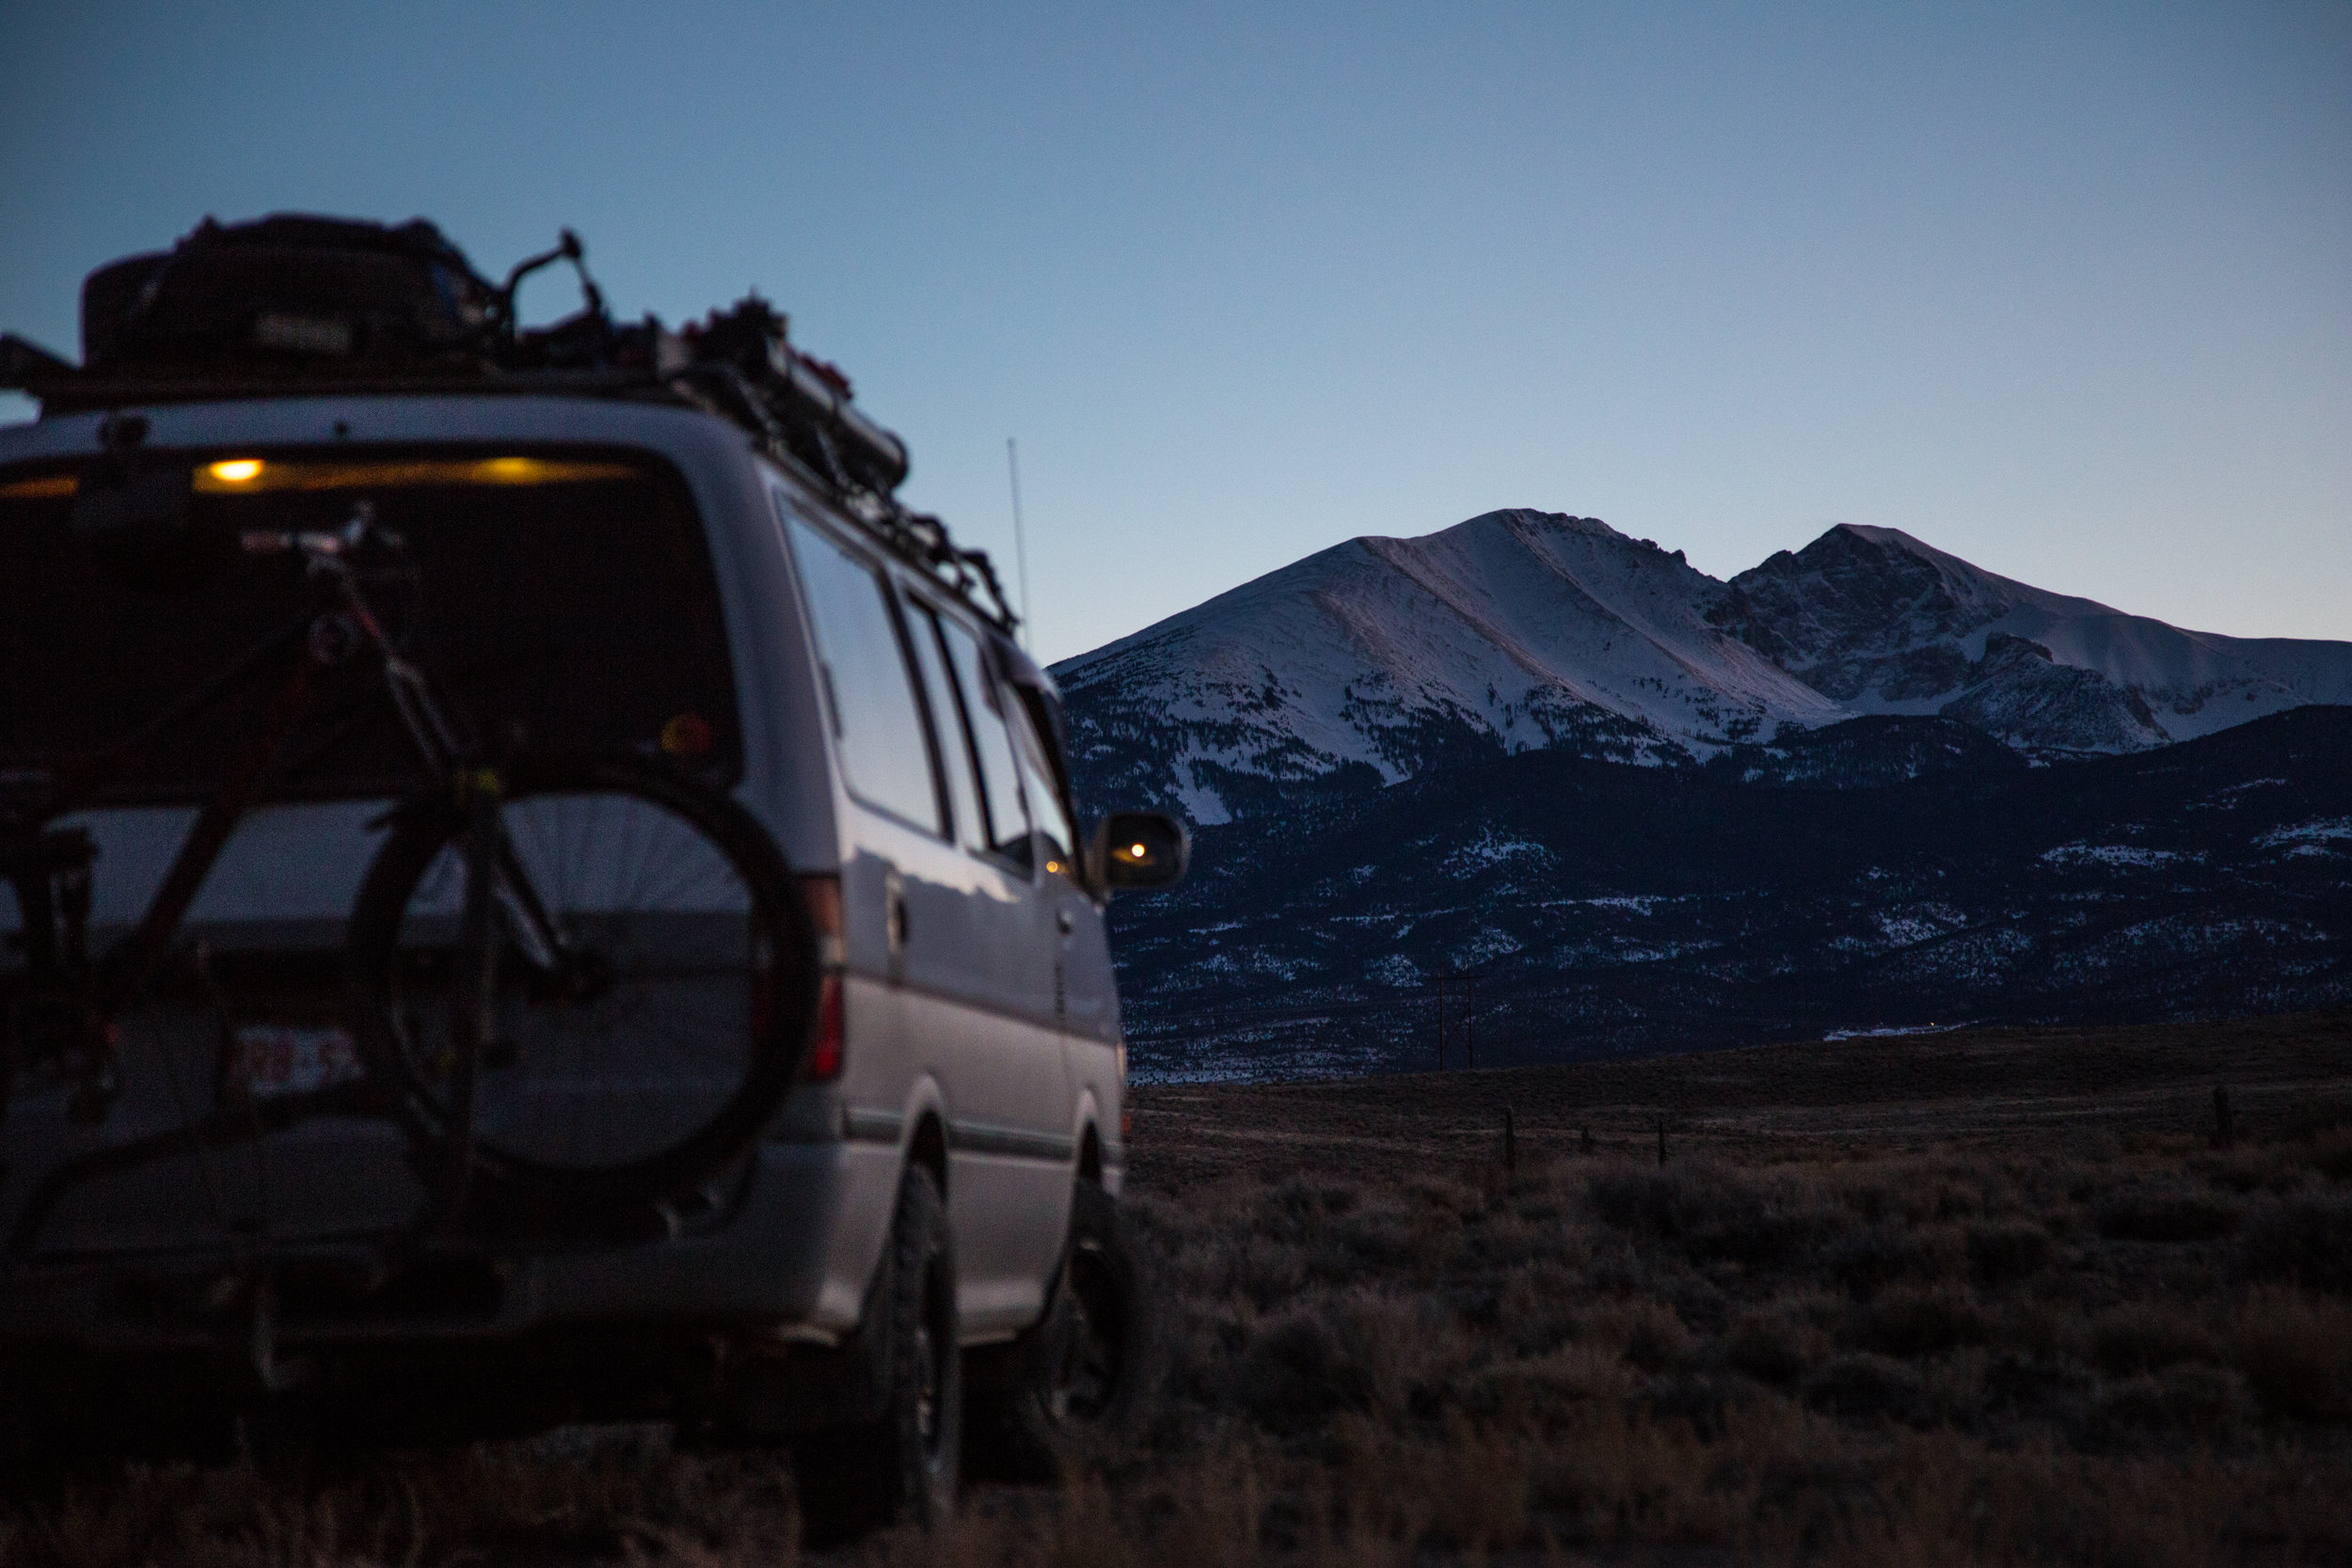 Watching the sunset on a snow capped mountain while being parked in a desert.